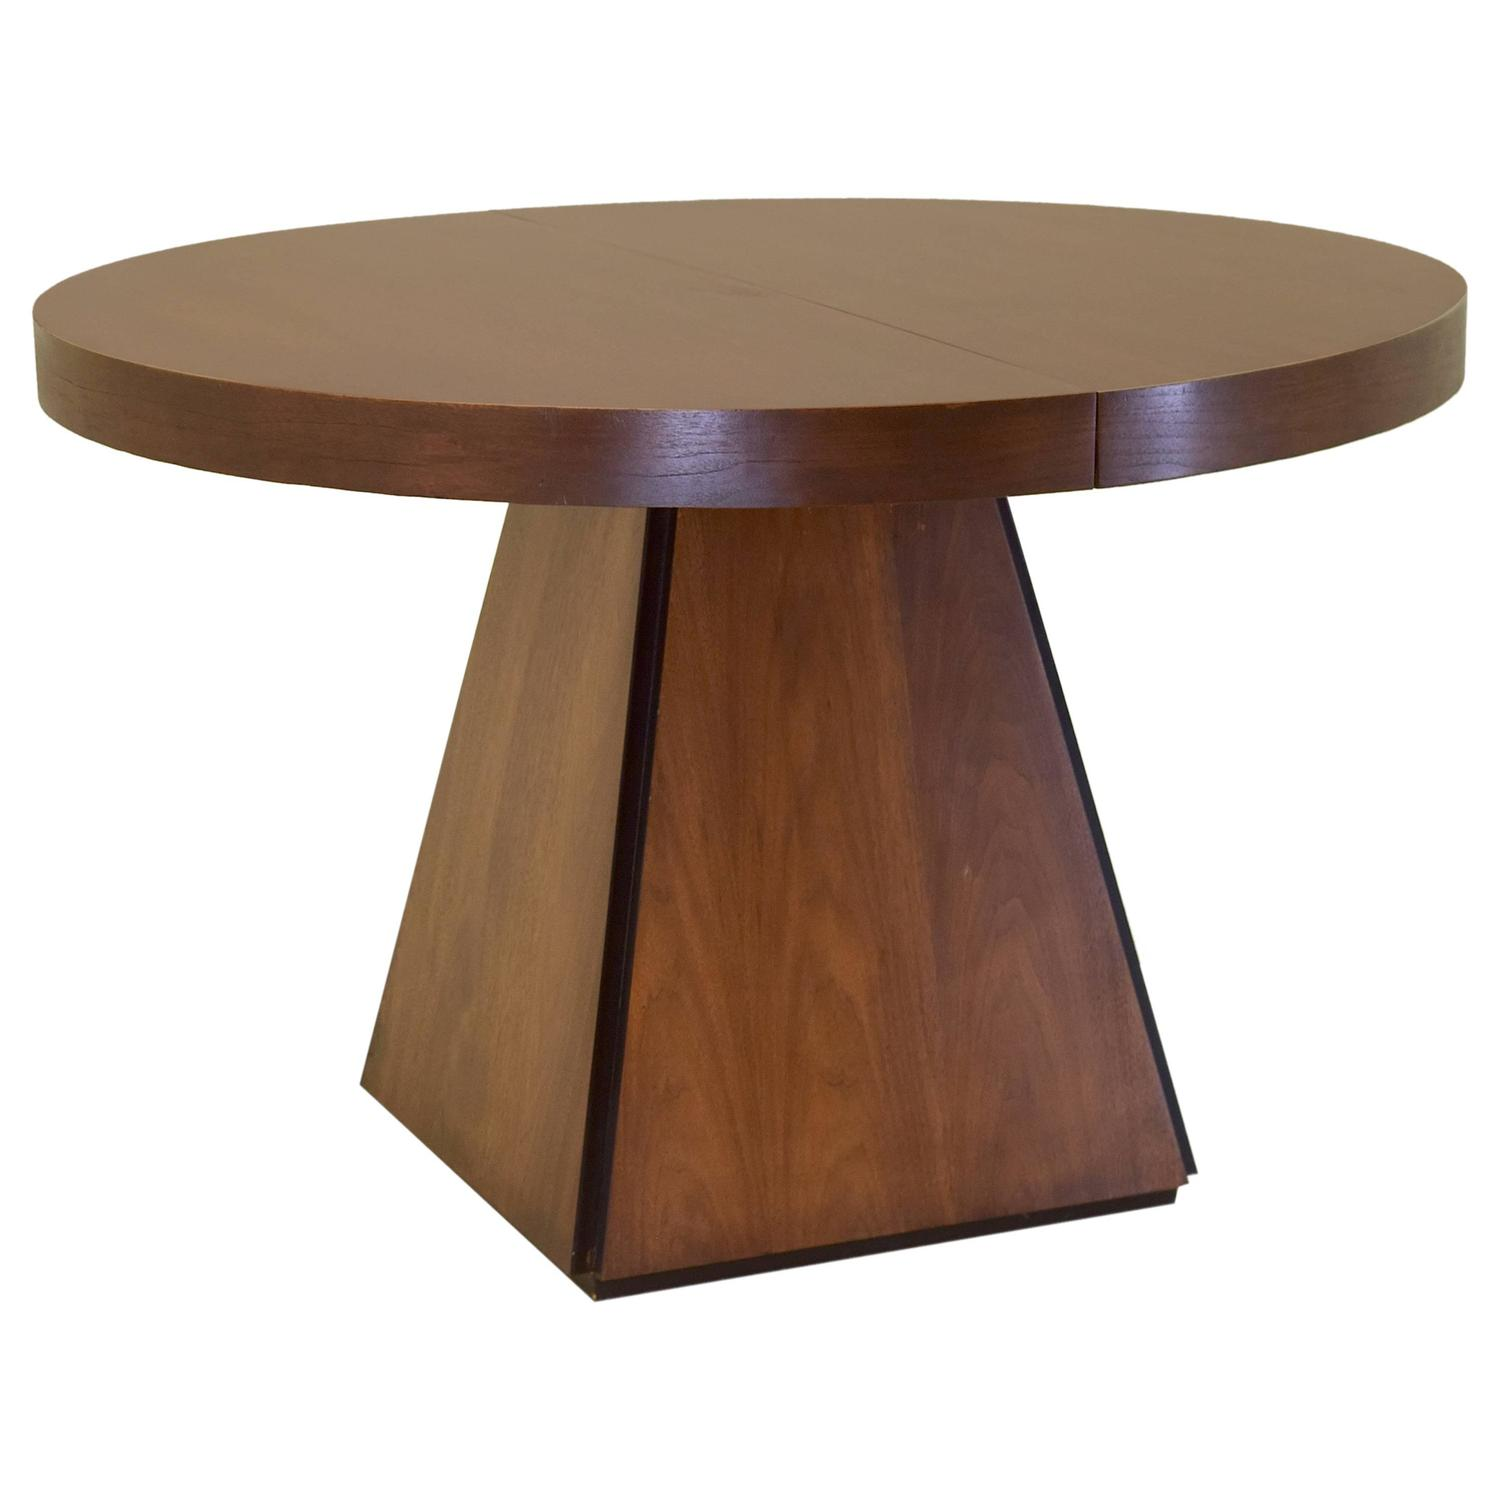 Pierre cardin round obelisk dining table in walnut with for Circle dining room table with leaf